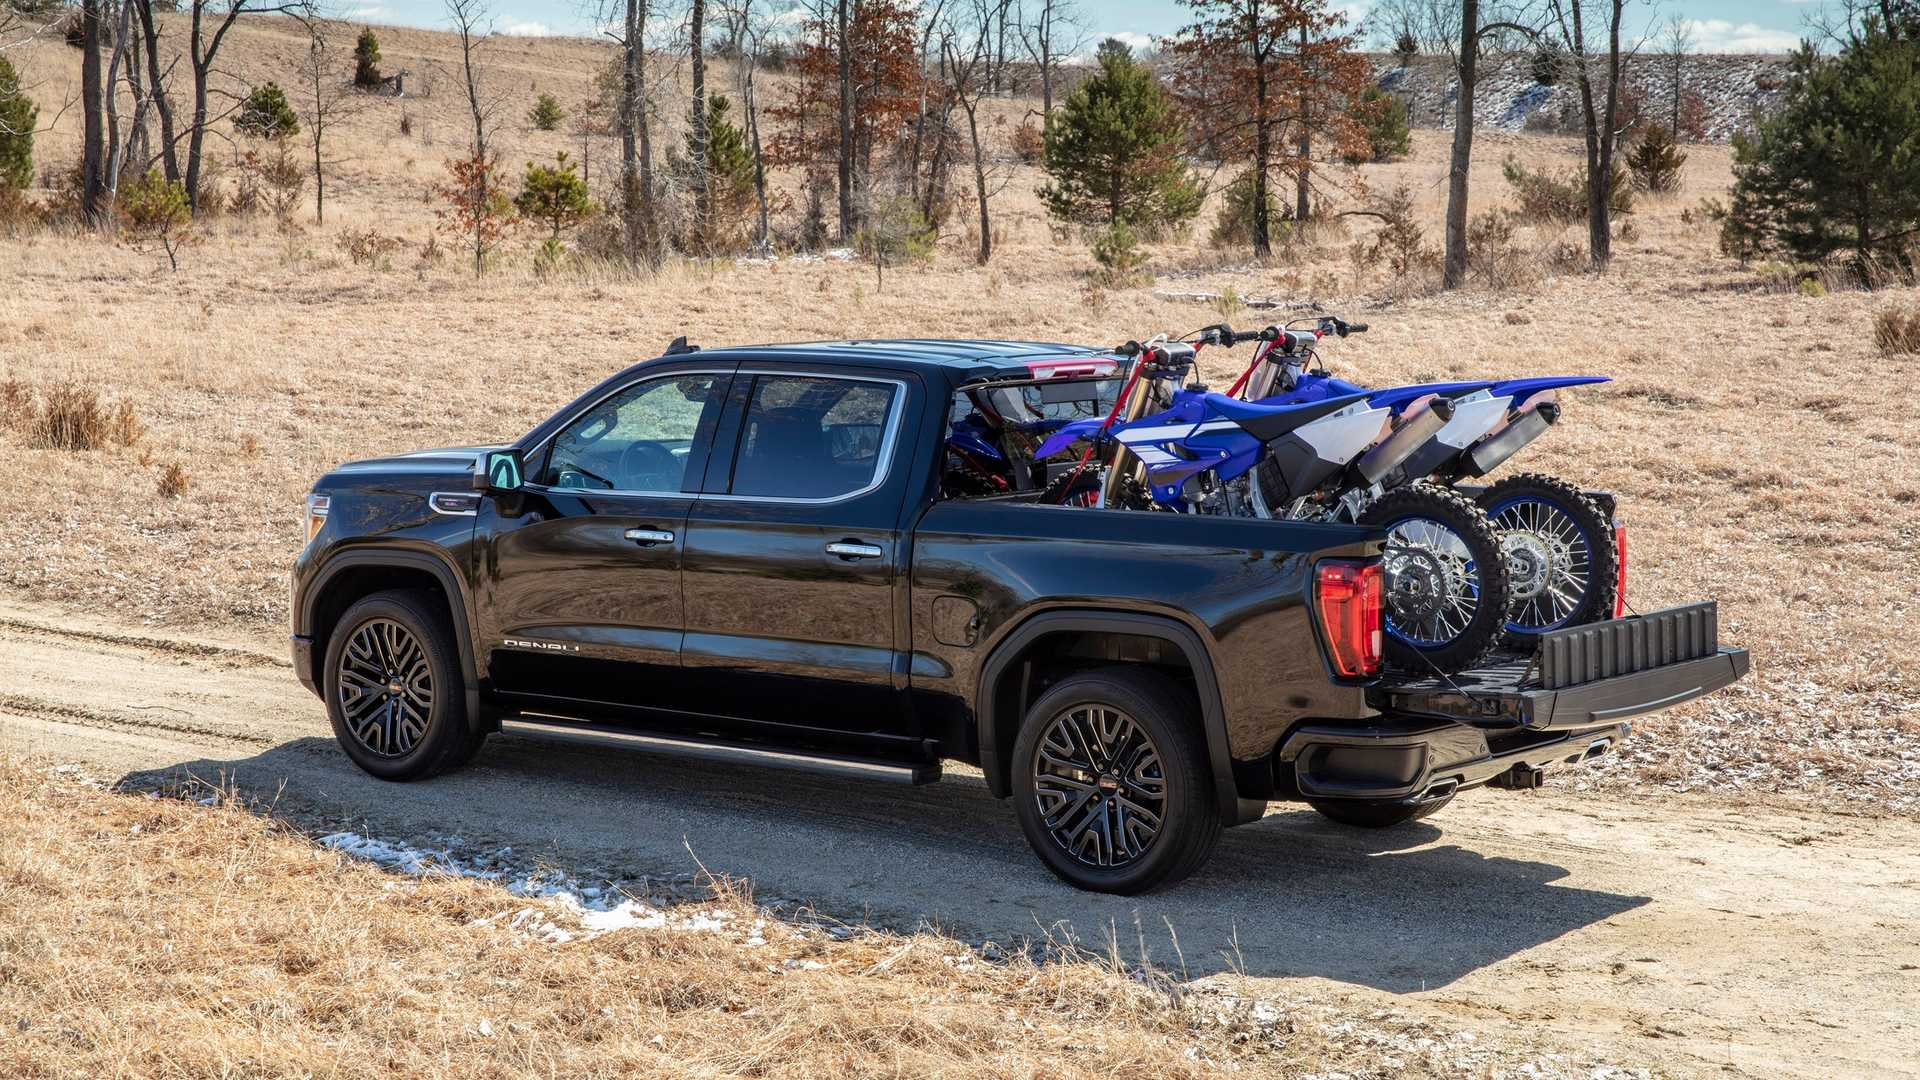 2019-gmc-sierra-carbonpro-edition-7